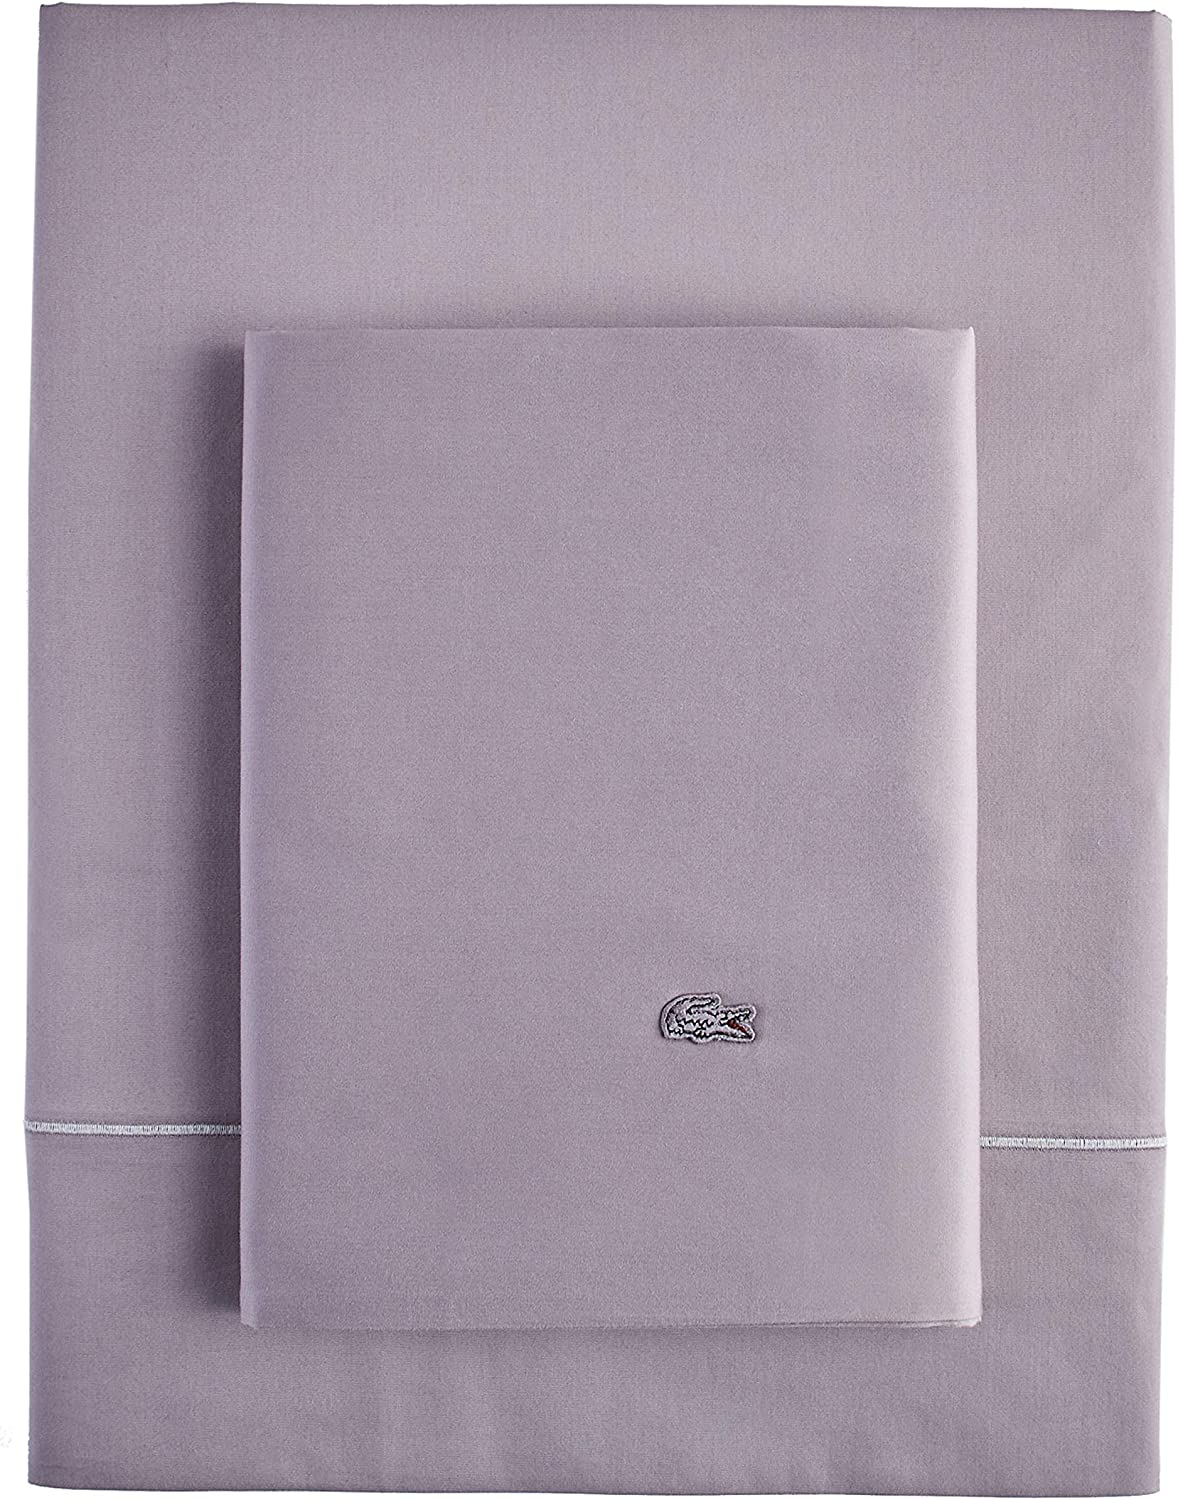 Lacoste Match Point Collection 4-Piece Sheet Set, Full, Storm Grey